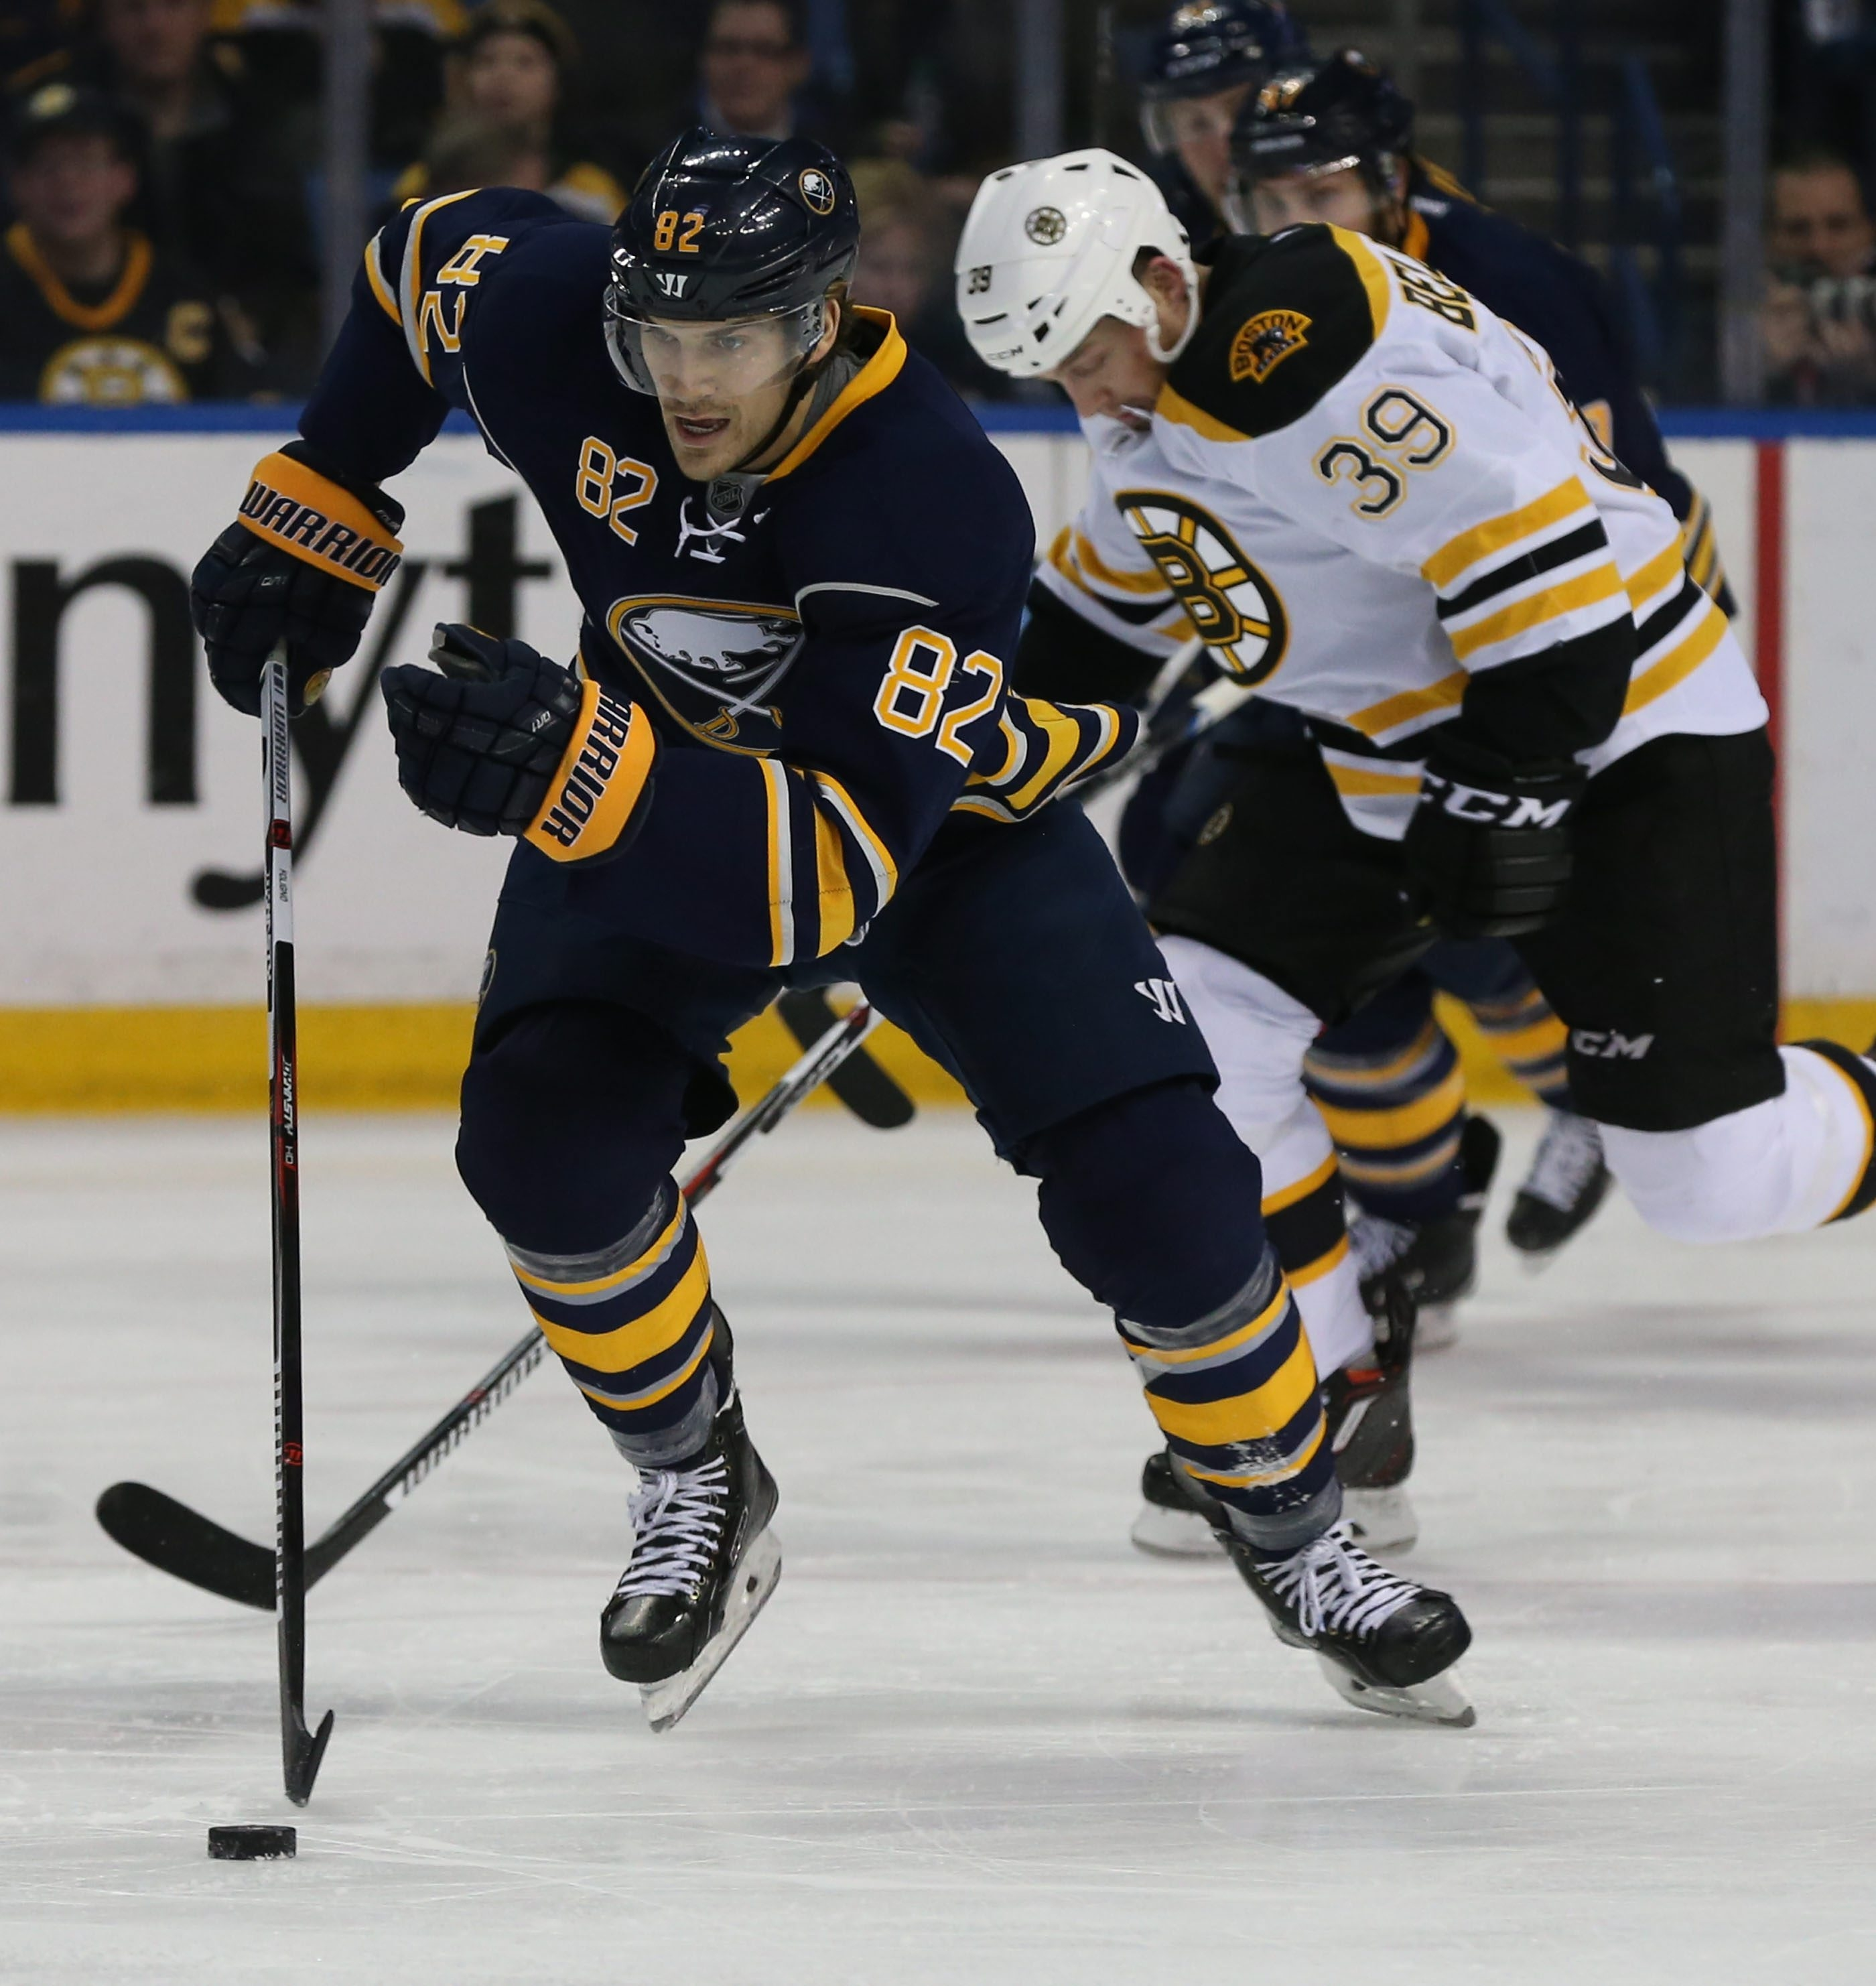 Marcus Foligno (82) battles Boston Bruins left wing Matt Beleskey (39) for the puck in the first period at First Niagara Center in Buffalo, NY on Friday, Jan. 15, 2016.  (James P. McCoy/ Buffalo News)